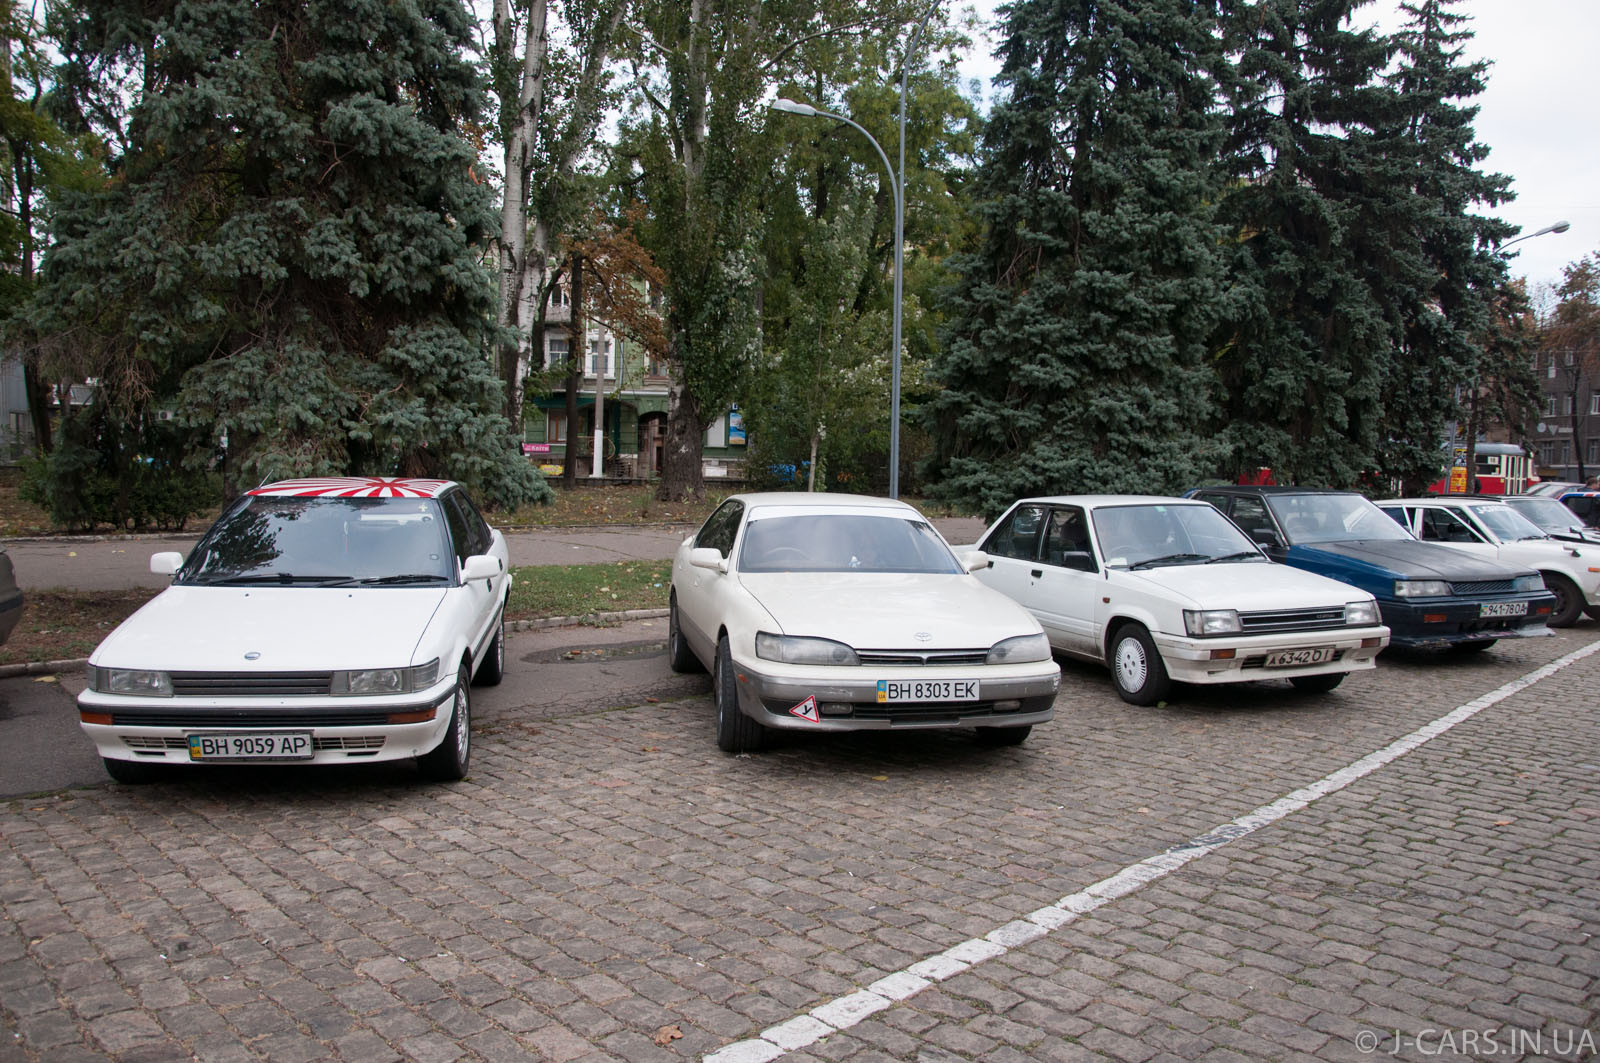 Сбор J-CARS.IN.UA Одесса